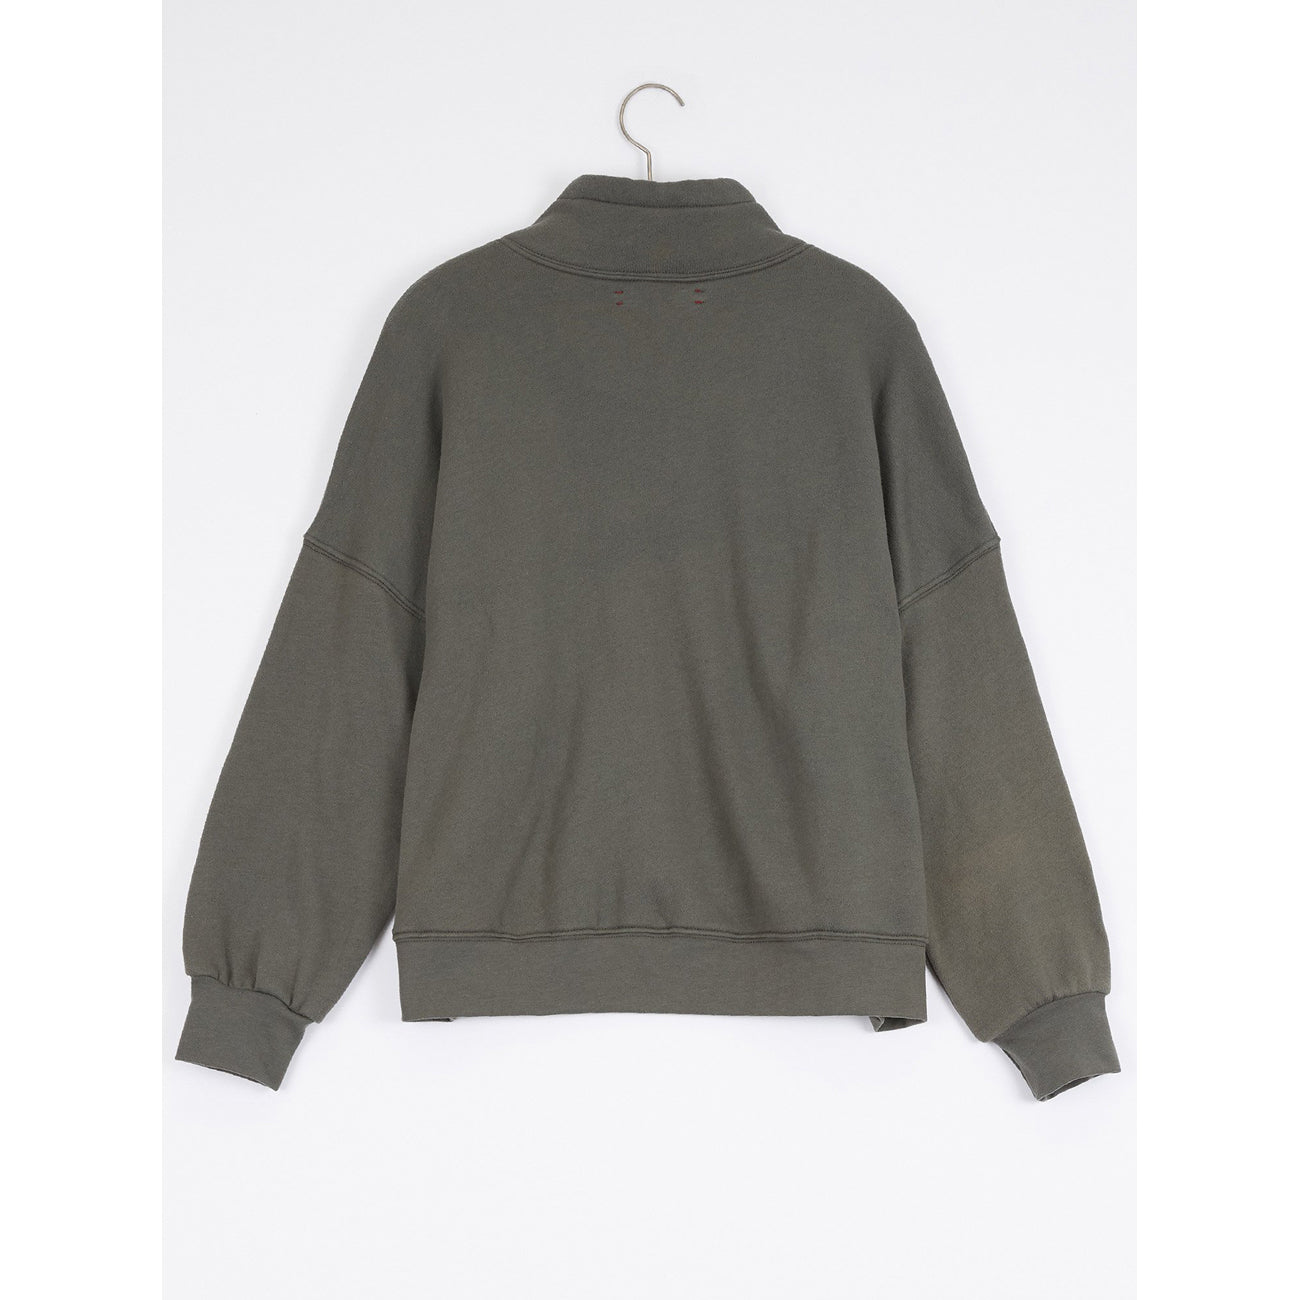 chase sweatshirt in olive stone